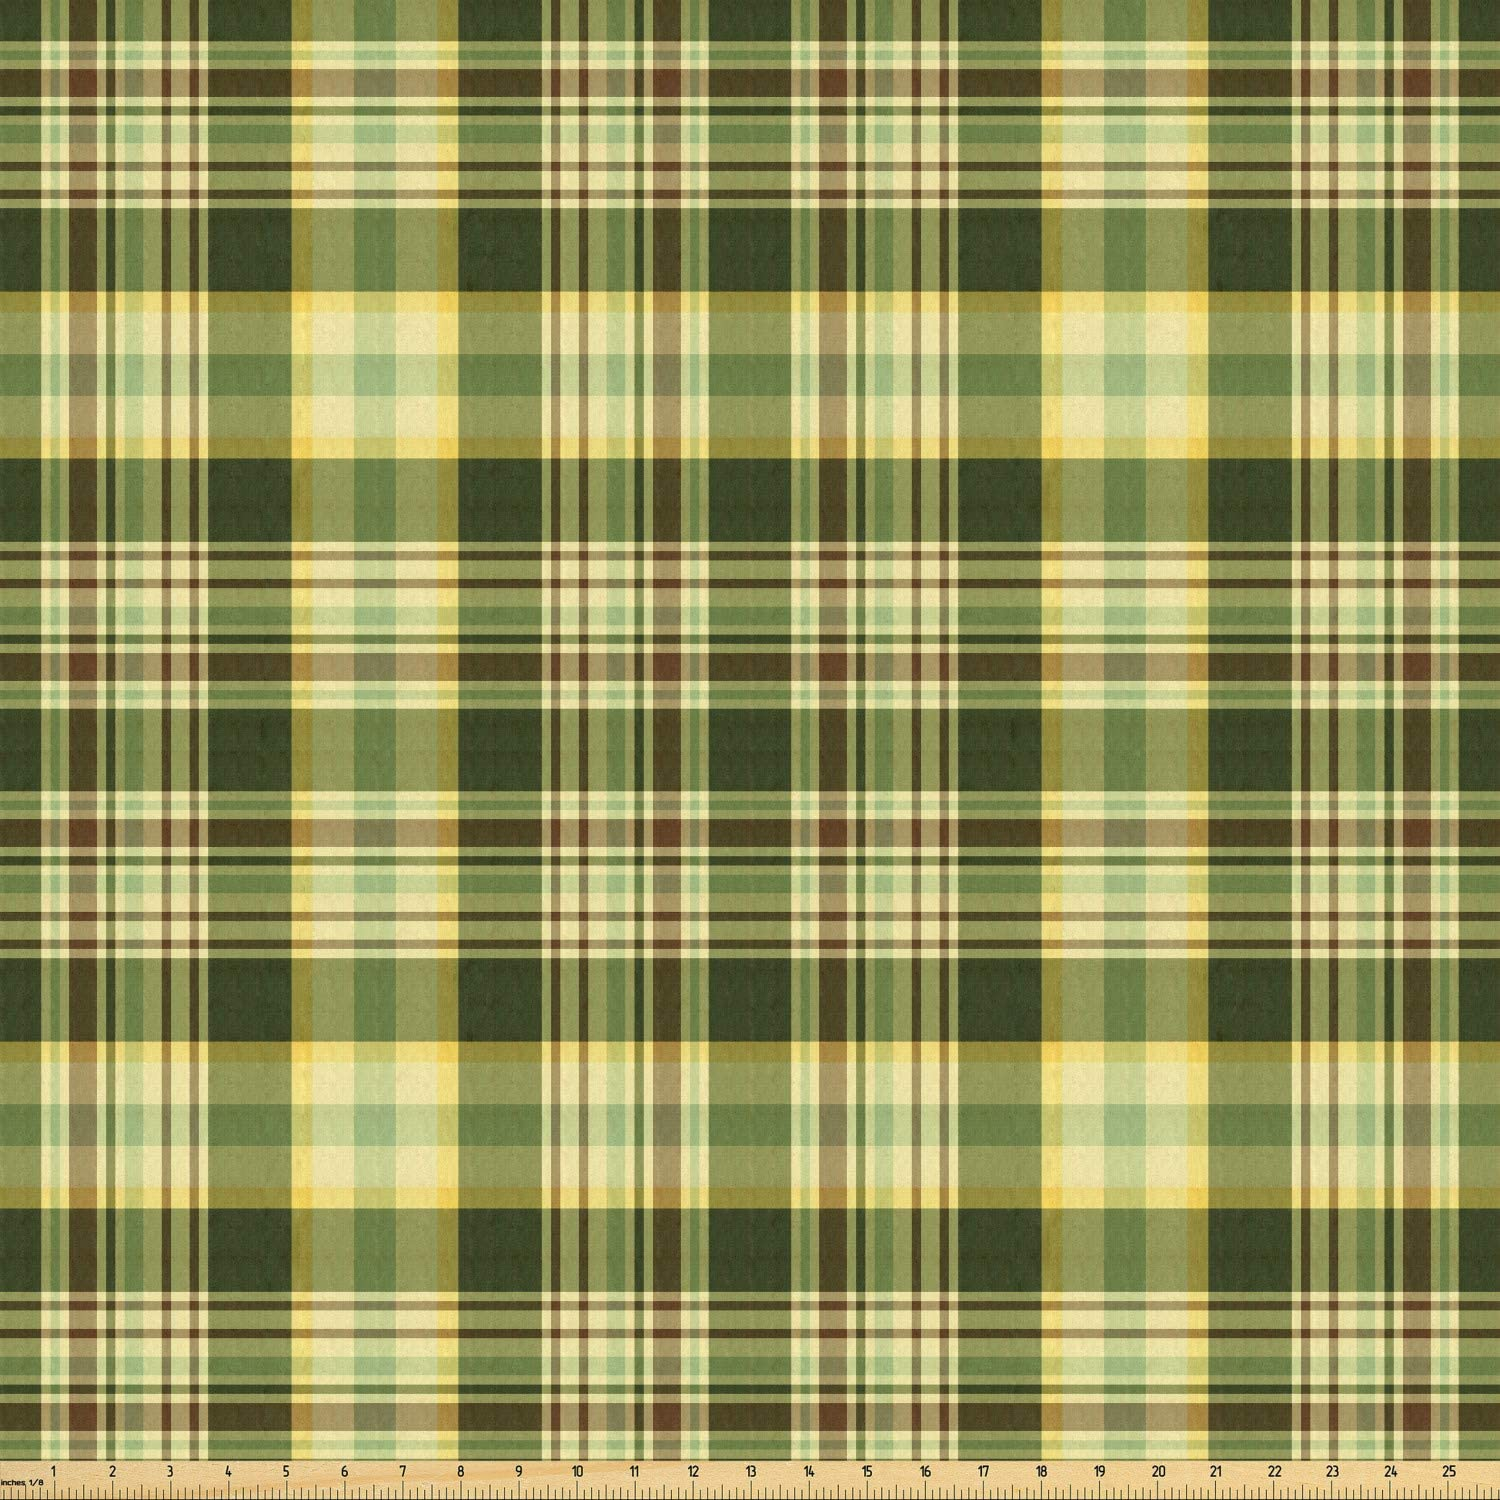 Ambesonne Olive Green Fabric by The Yard, Quilt Pattern Traditional Scottish Design Checkered Geometrical, Stretch Knit Fabric for Clothing Sewing and Arts Crafts, 10 Yards, Dark Green Yellow Brown